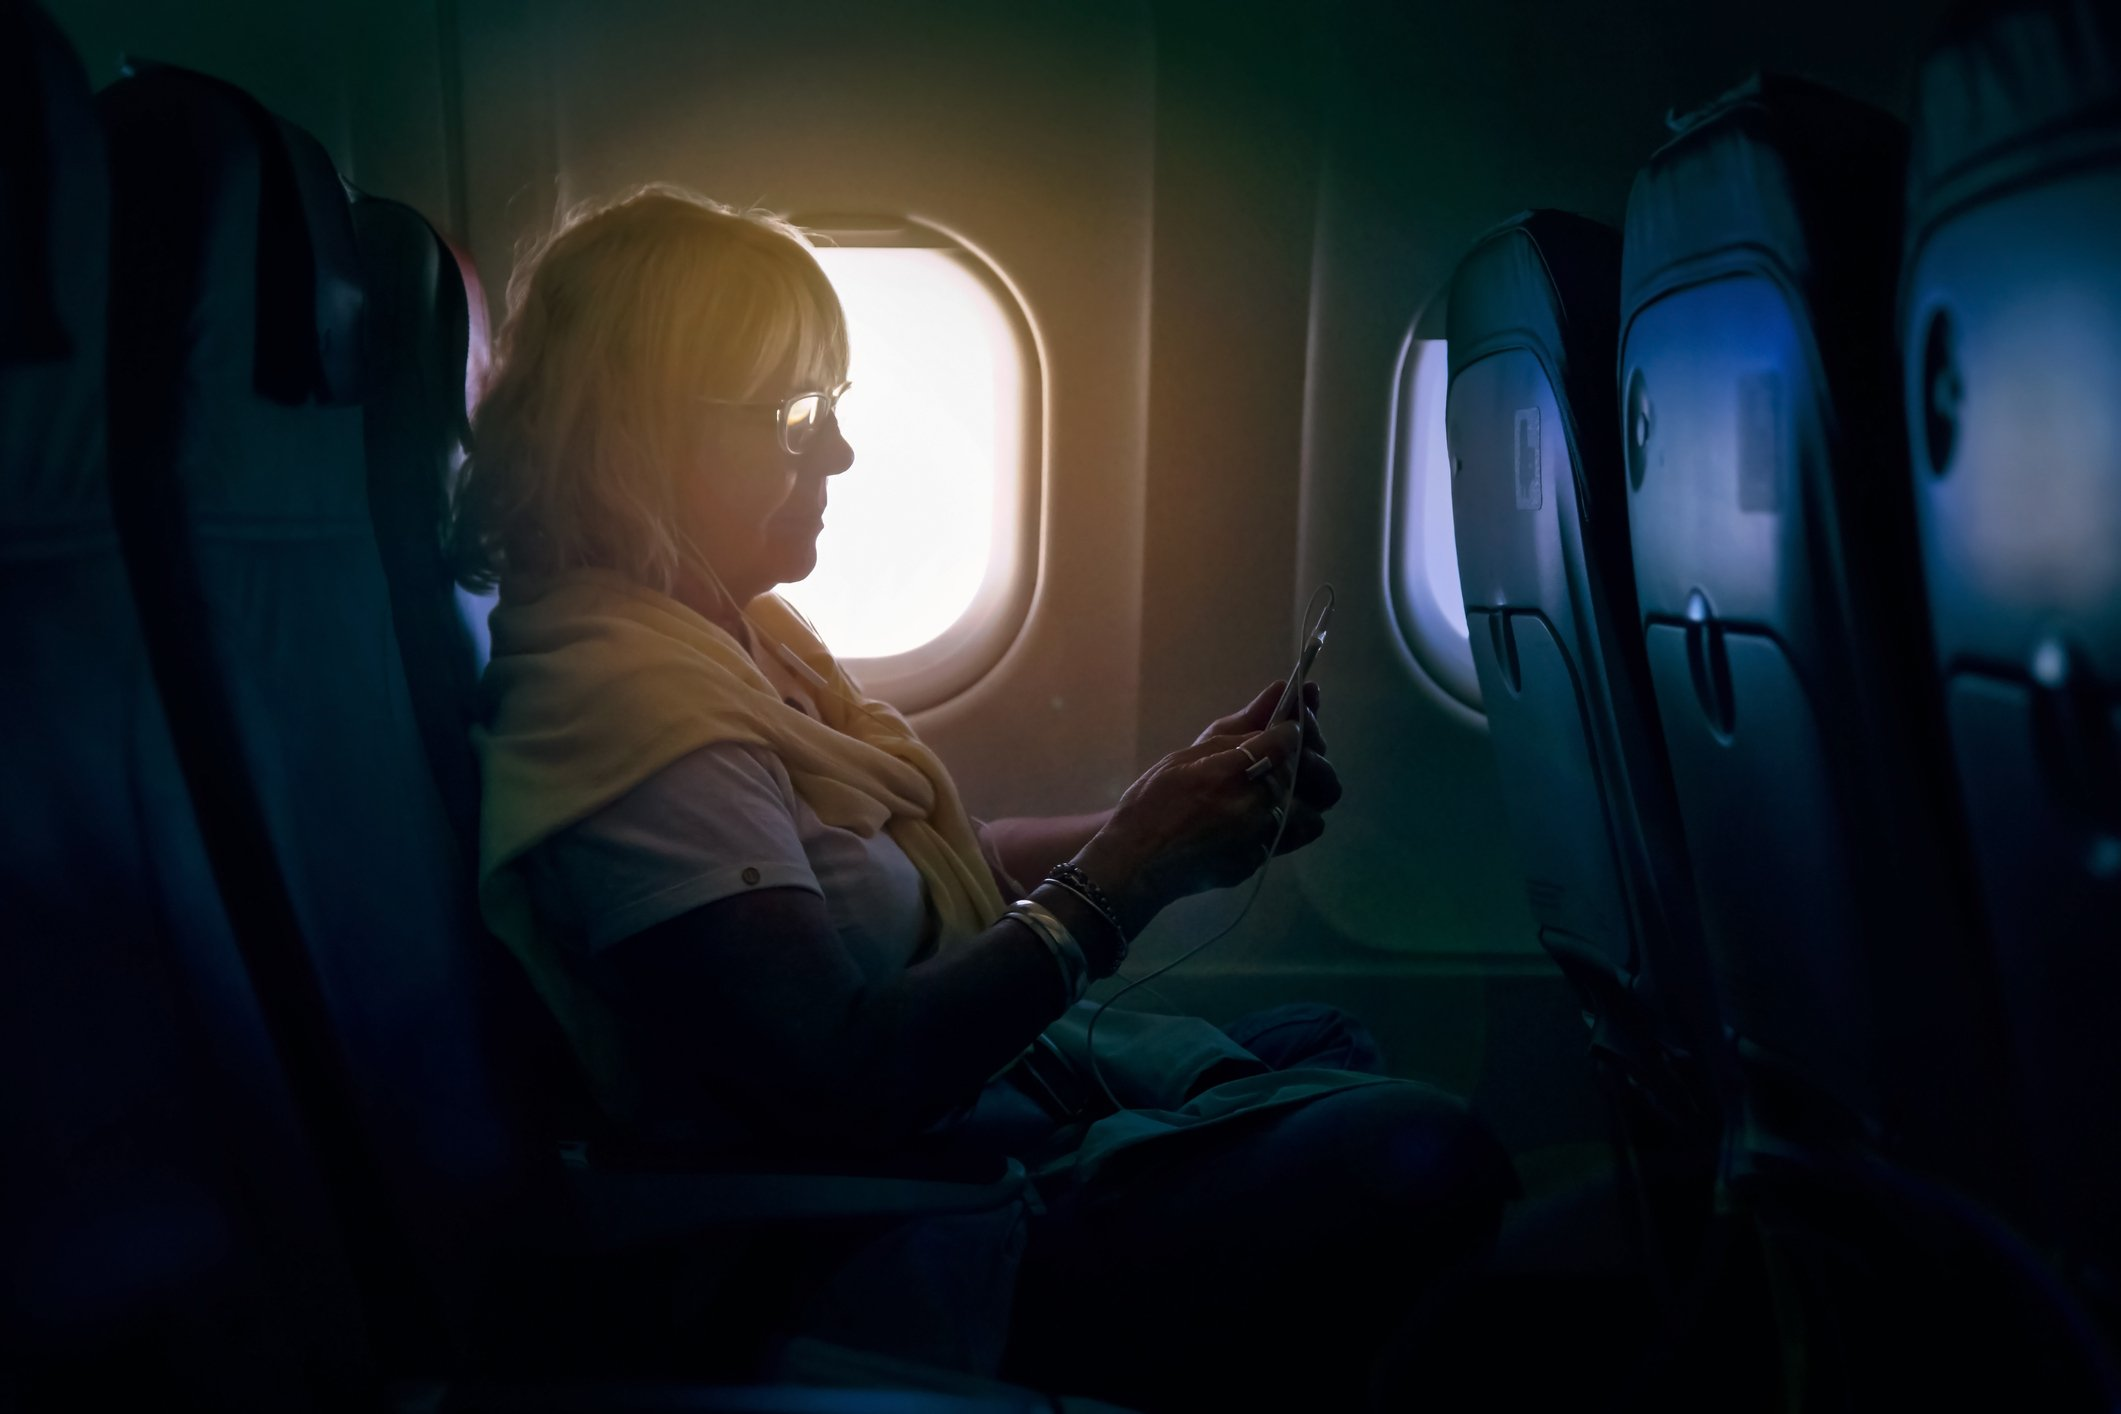 Senior woman using a smartphone on a plane | Photo: Getty Images